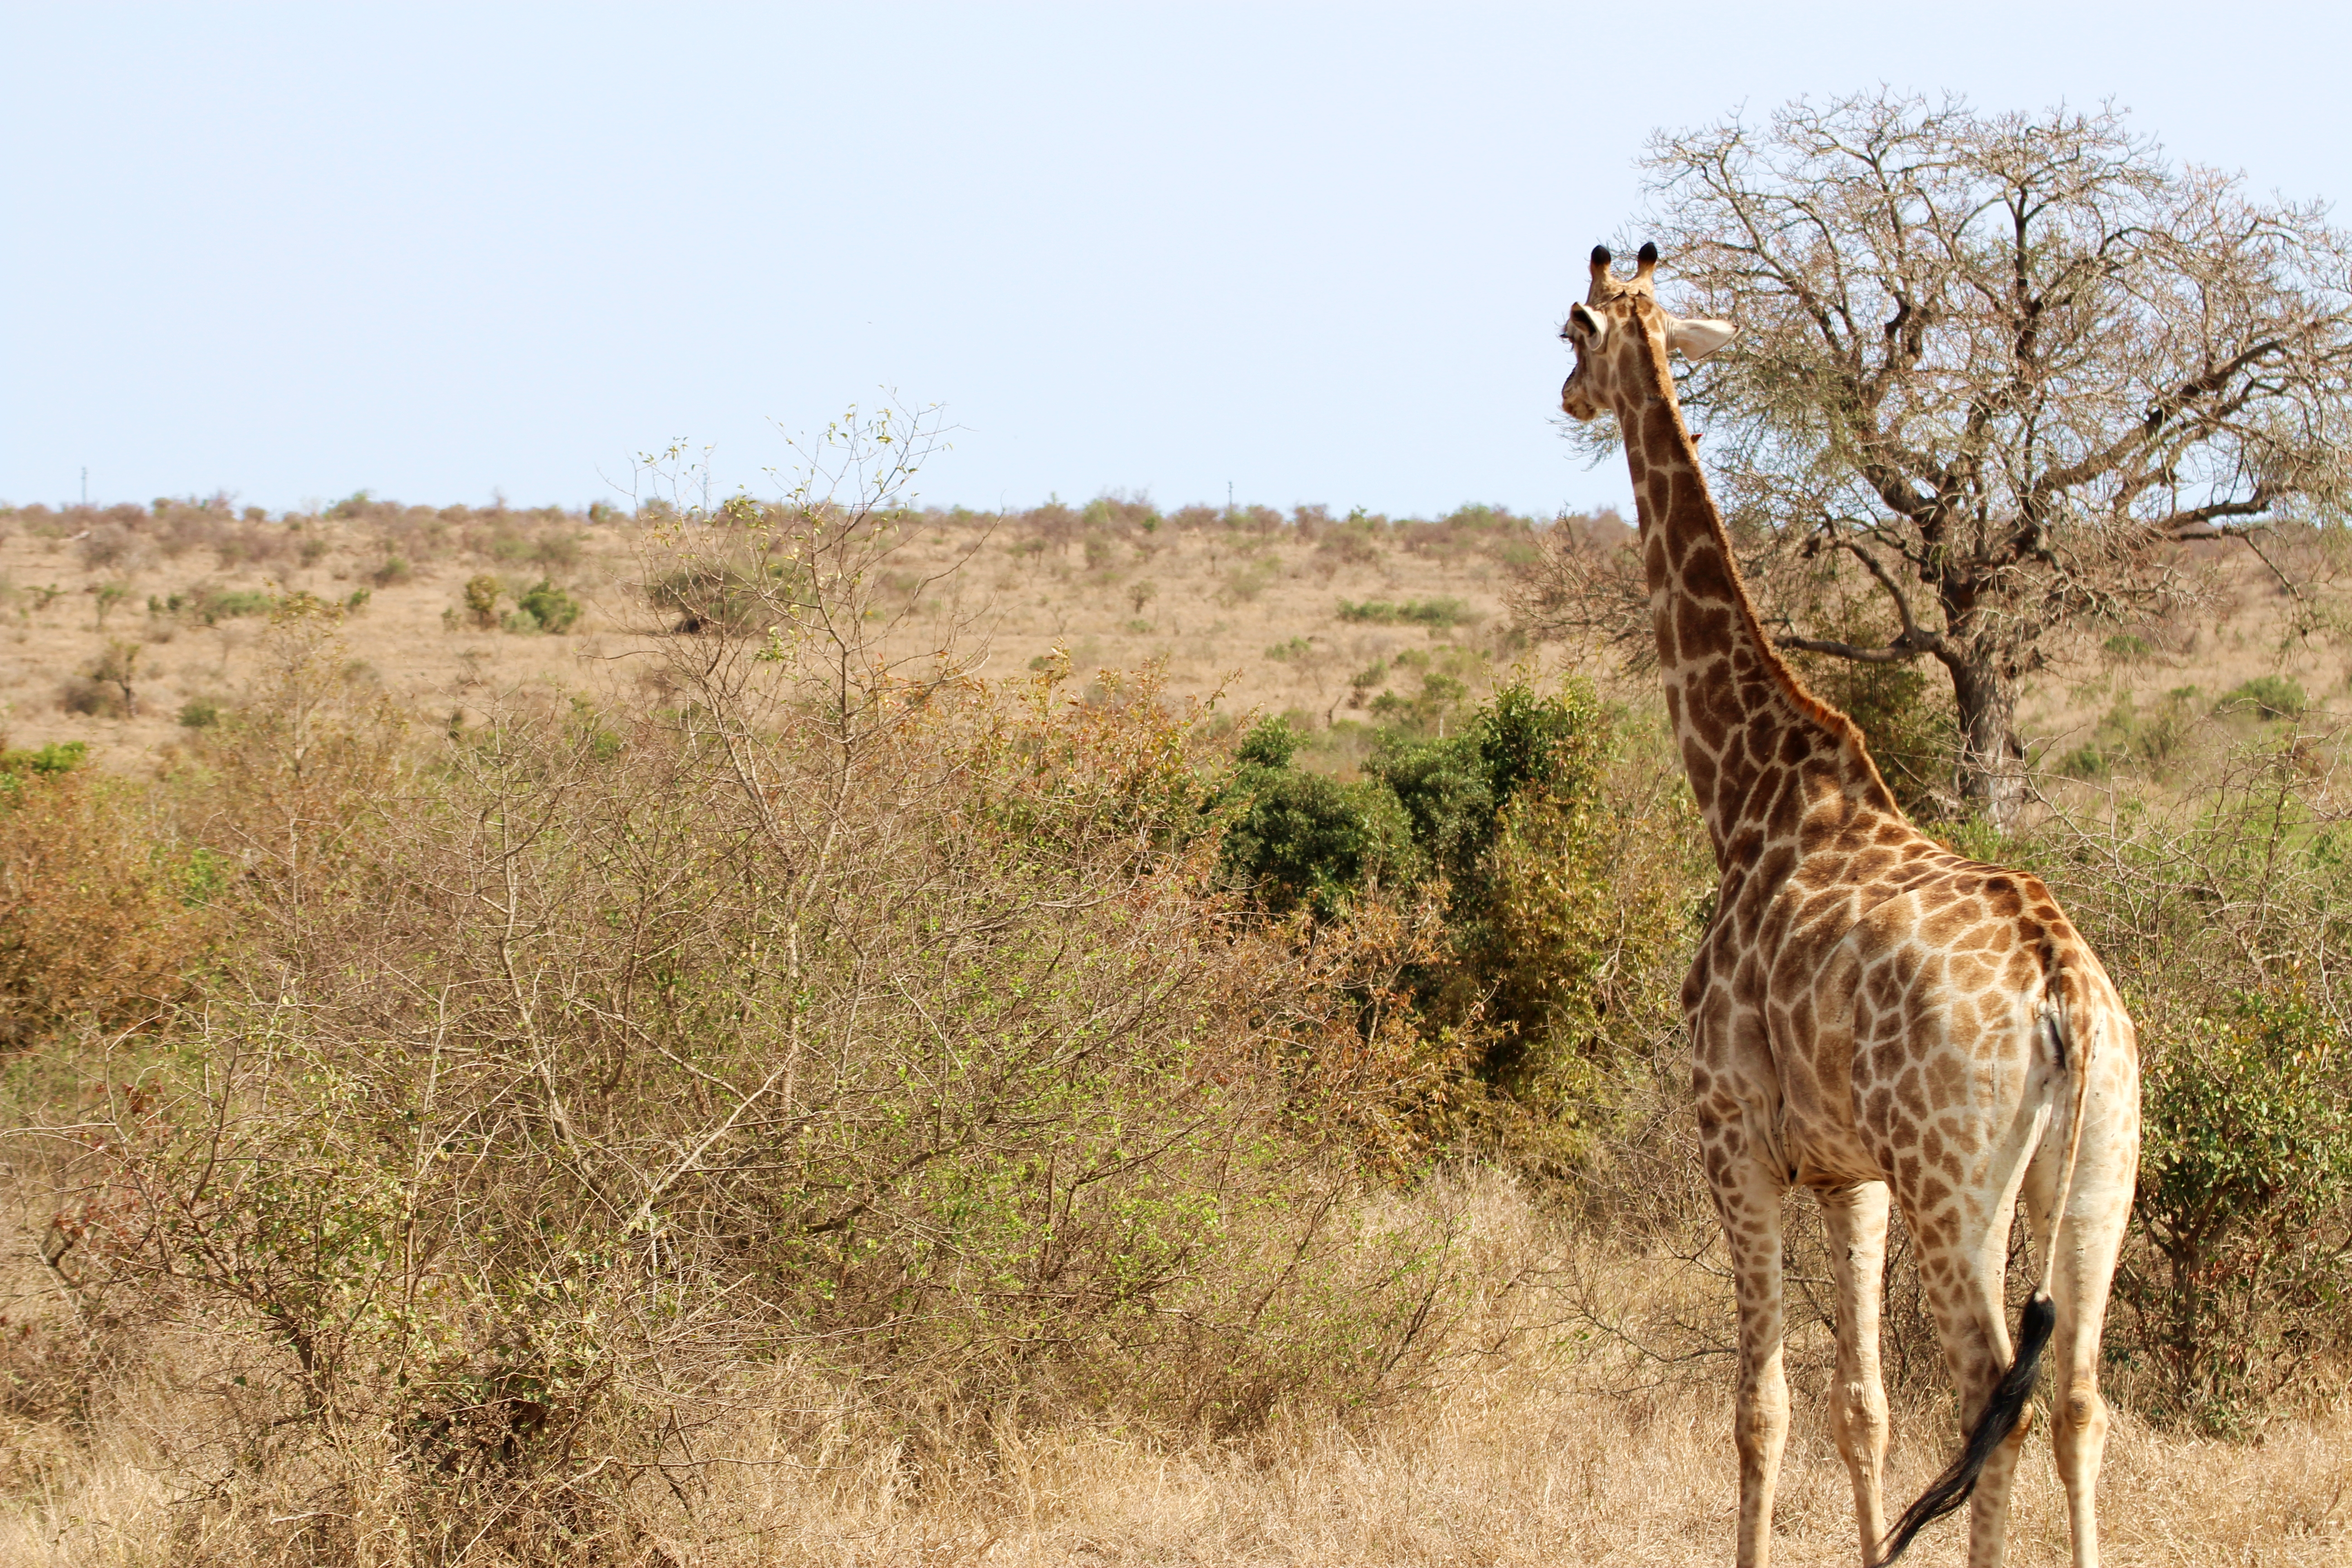 Kruger giraffe looking into the distance